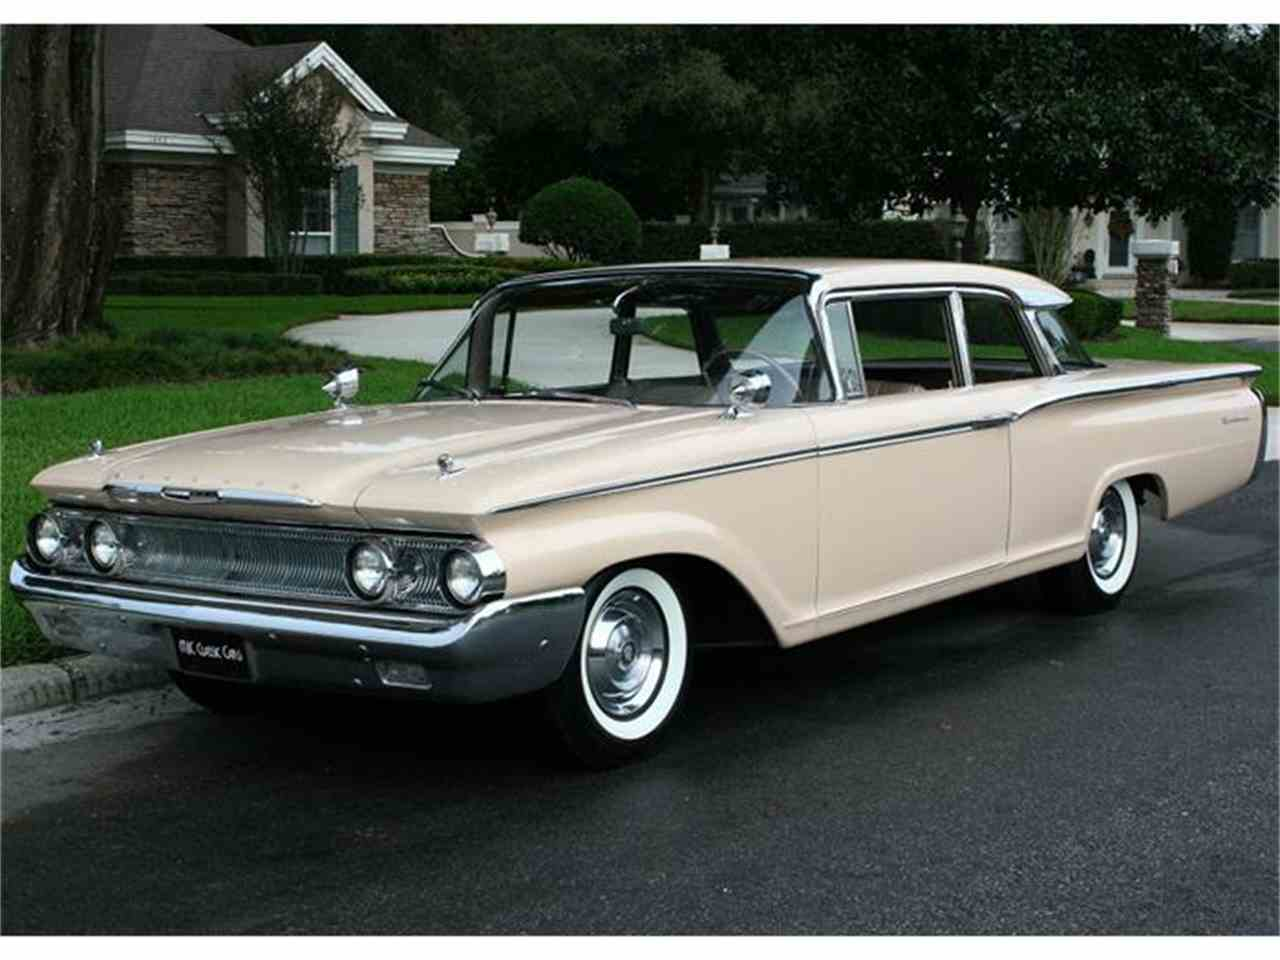 Cars For Sale Under 5000 By Owner >> 1960 Mercury Monterey for Sale | ClassicCars.com | CC-761665